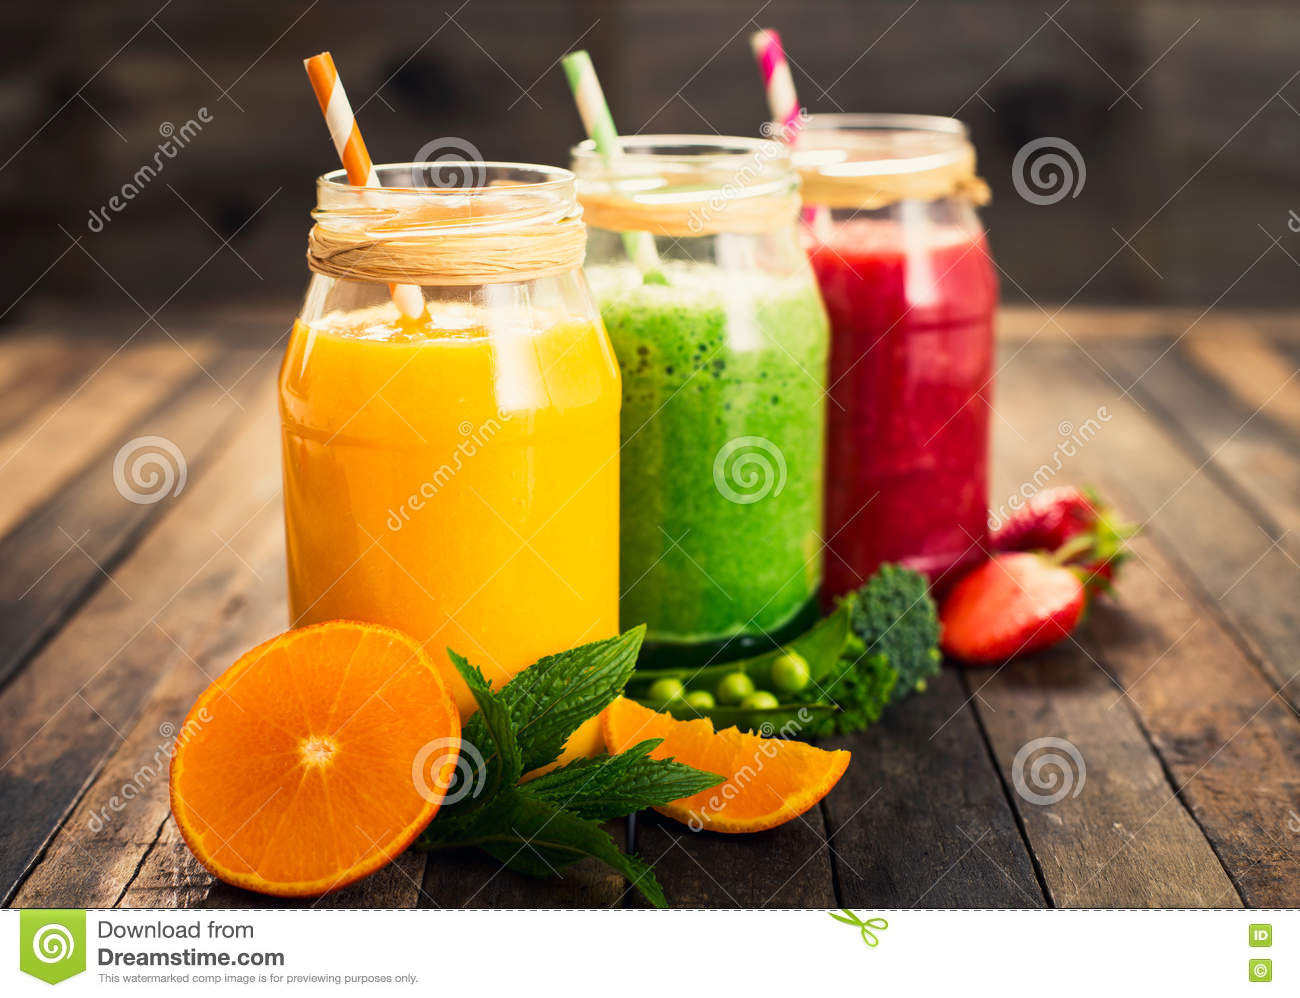 Healthy Fruit And Vegetable Smoothies  Healthy Fruit And Ve able Smoothies Stock Image Image